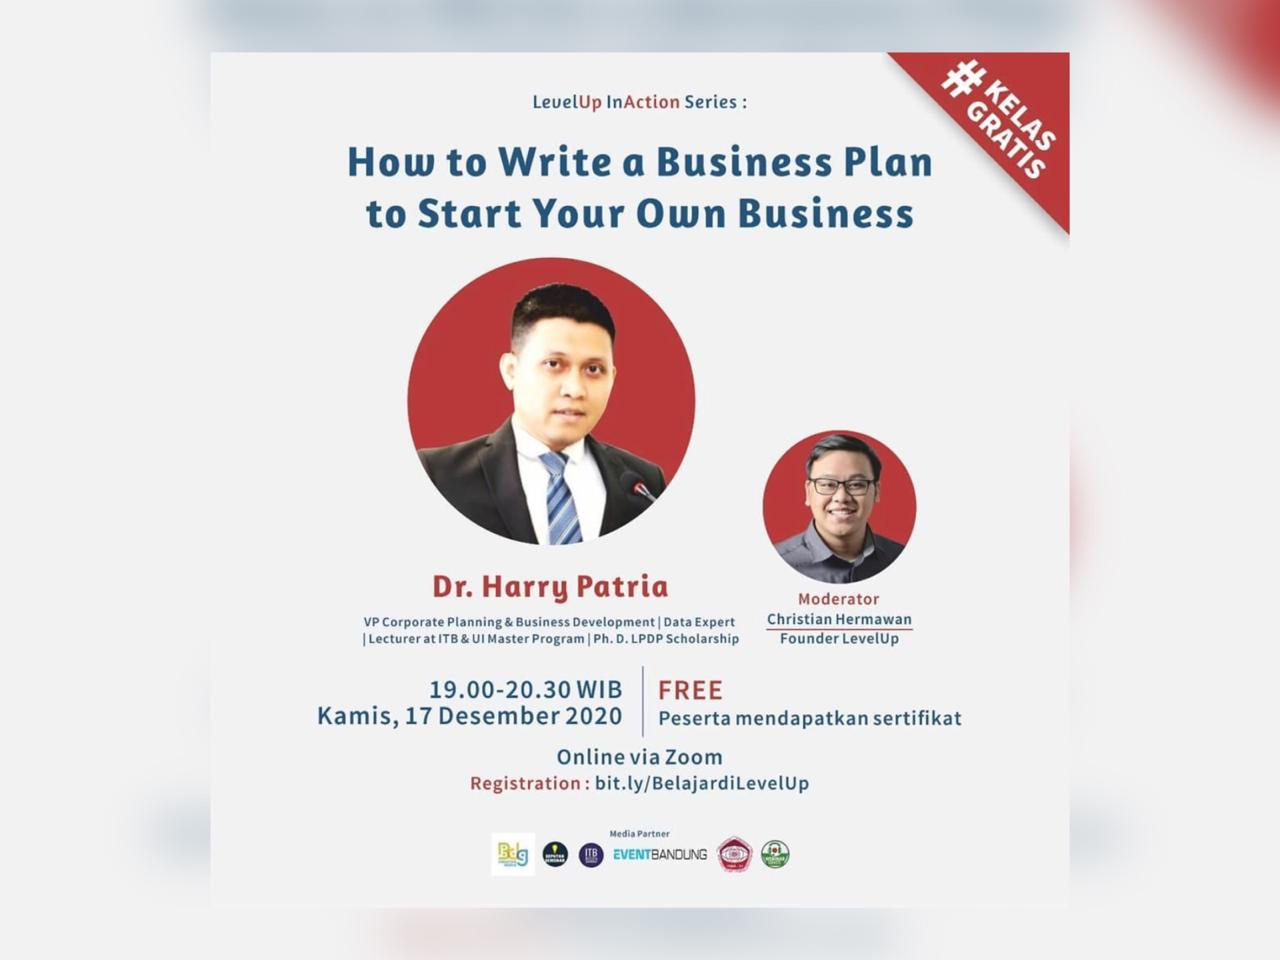 How To Write A Bussines Plan To Start Your Own Bussines